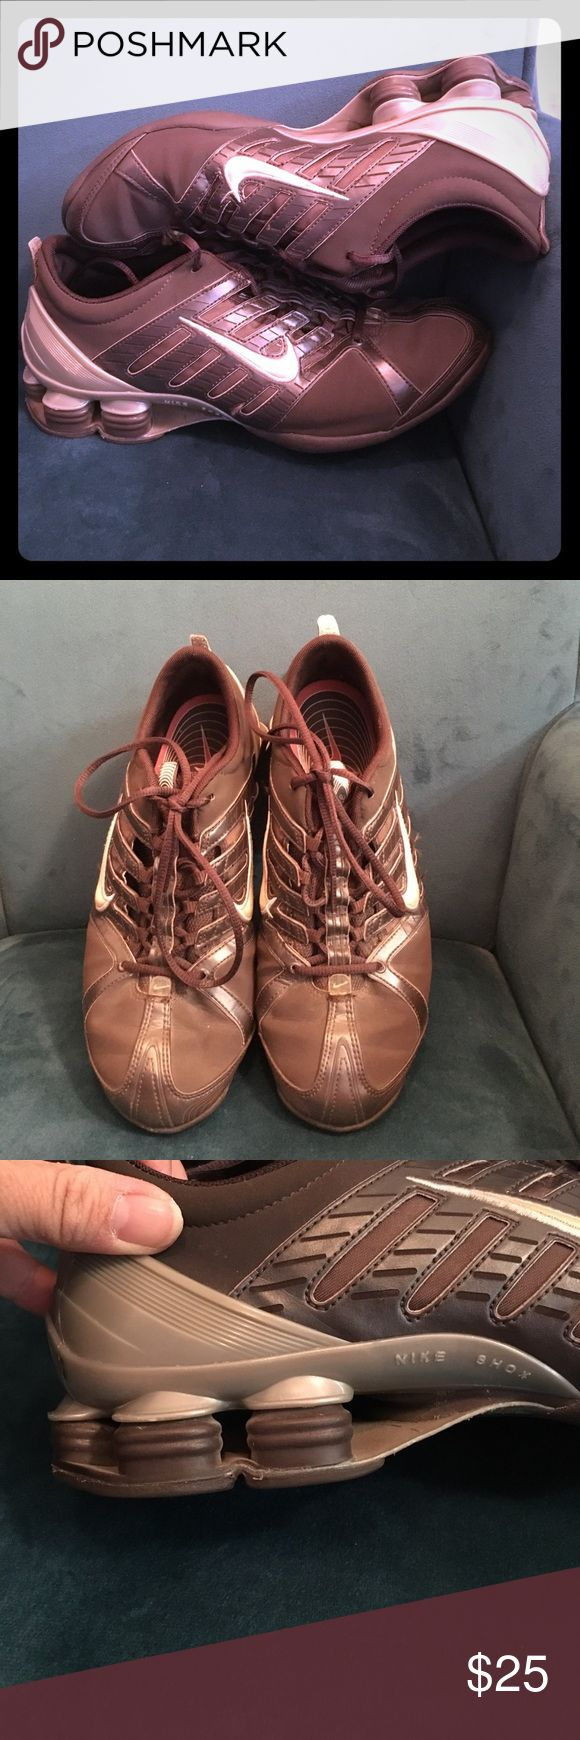 Retro Nike Shox shoe, 8.5, GUC, secret pocket These Nike chocolate brown with cream swish need someone to love them again. They are a true 8.5 (my foot has shrunk). Easy to make wider or narrow. See last pics for secret pocket for key, cash or condom🙀. The backs have gray. I used them for weight training not for running, so not sure if great for running, good for gym. Nike Shoes Athletic Shoes